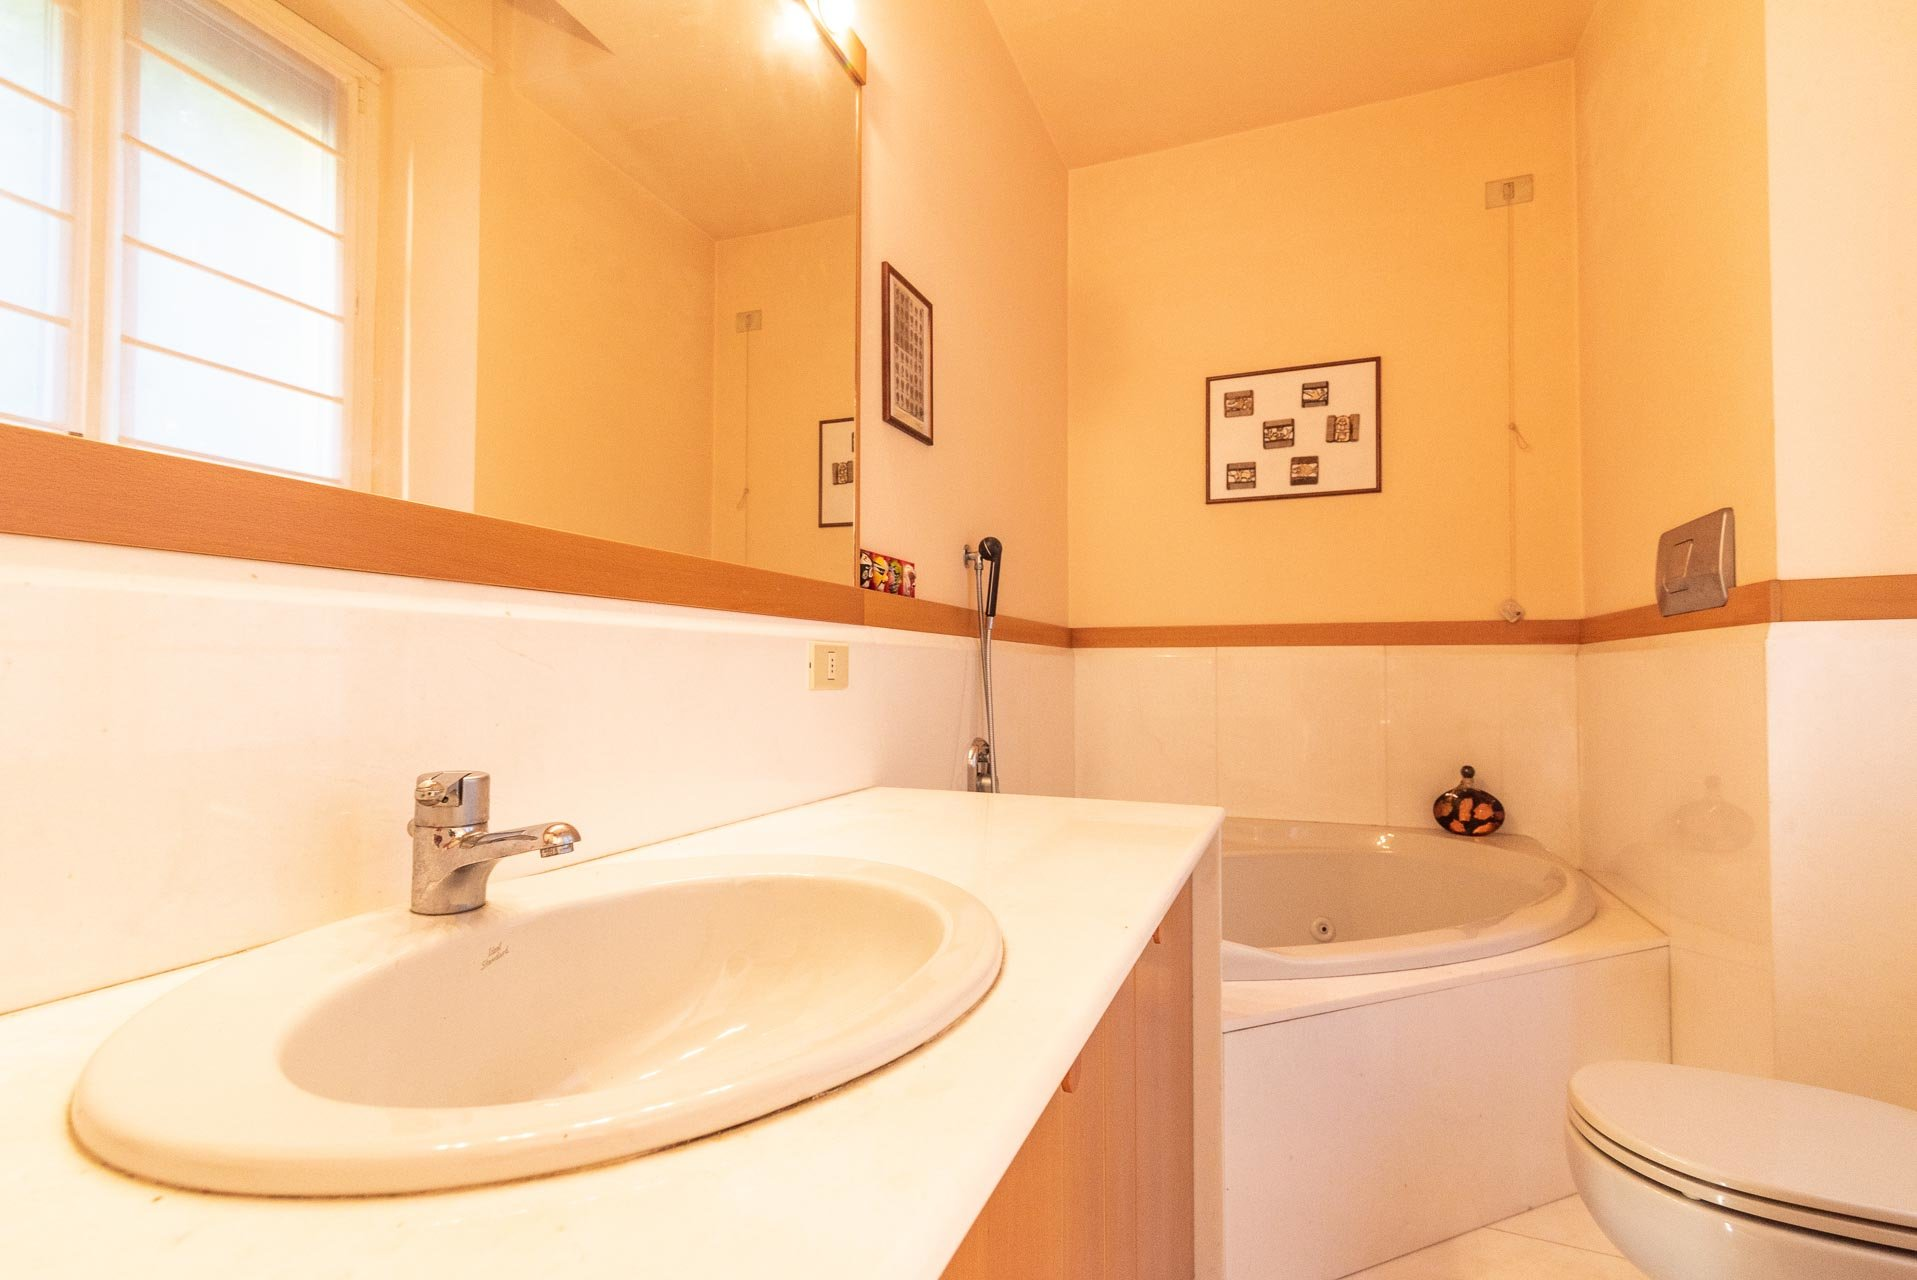 Lake view apartment for sell in Baveno - bathroom with bathtub